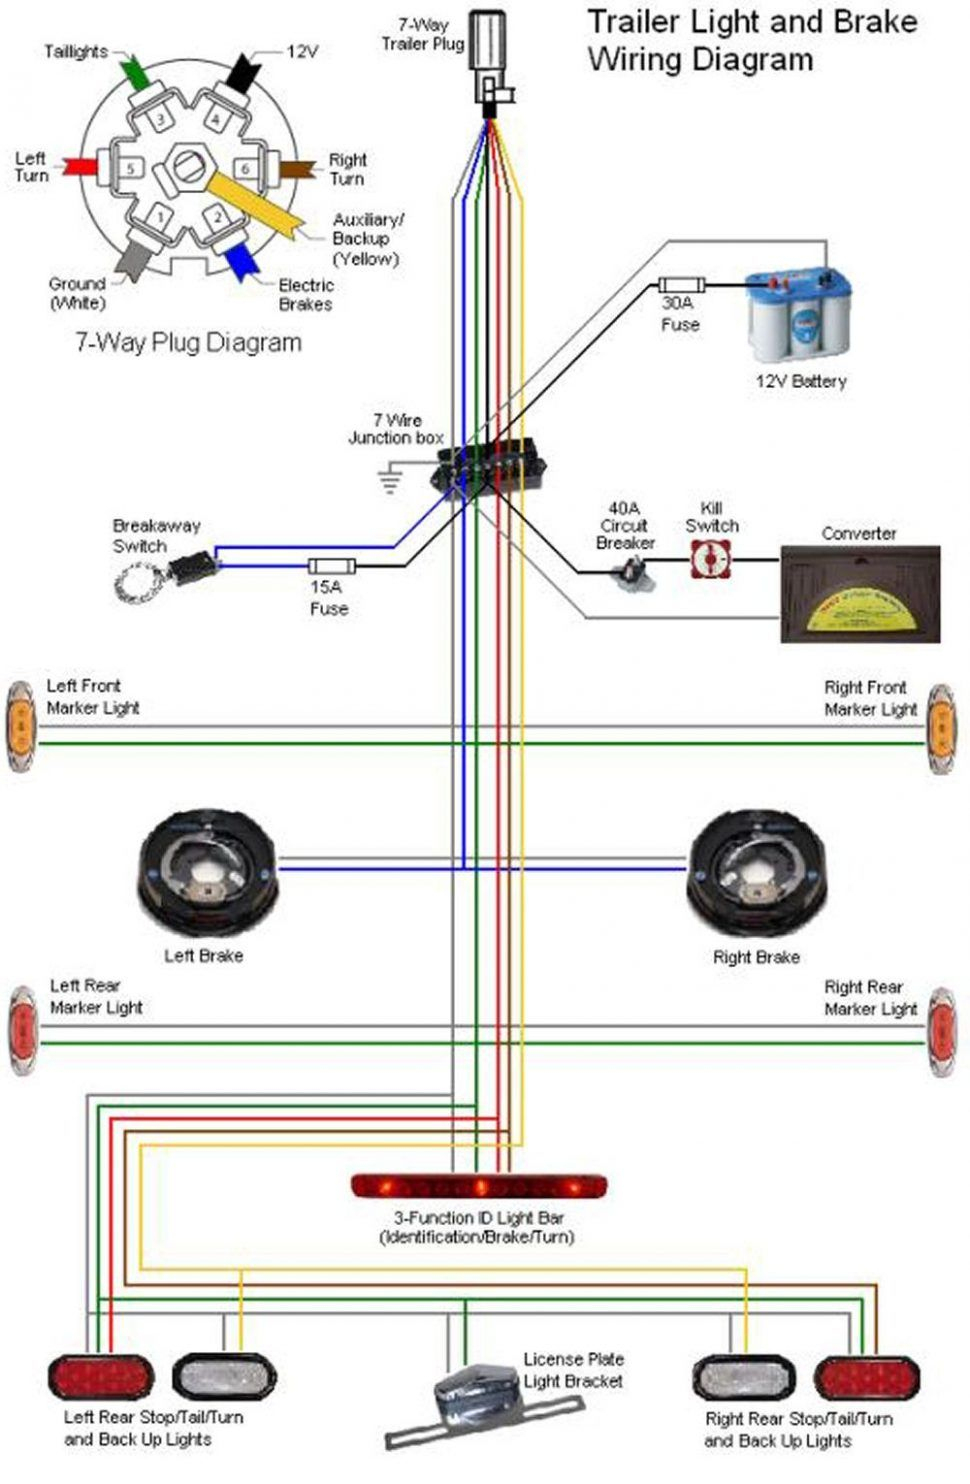 Seven Pin Trailer Wiring Diagram | Wiring Diagrams Gallery - 7 Way Wiring Diagram Trailer